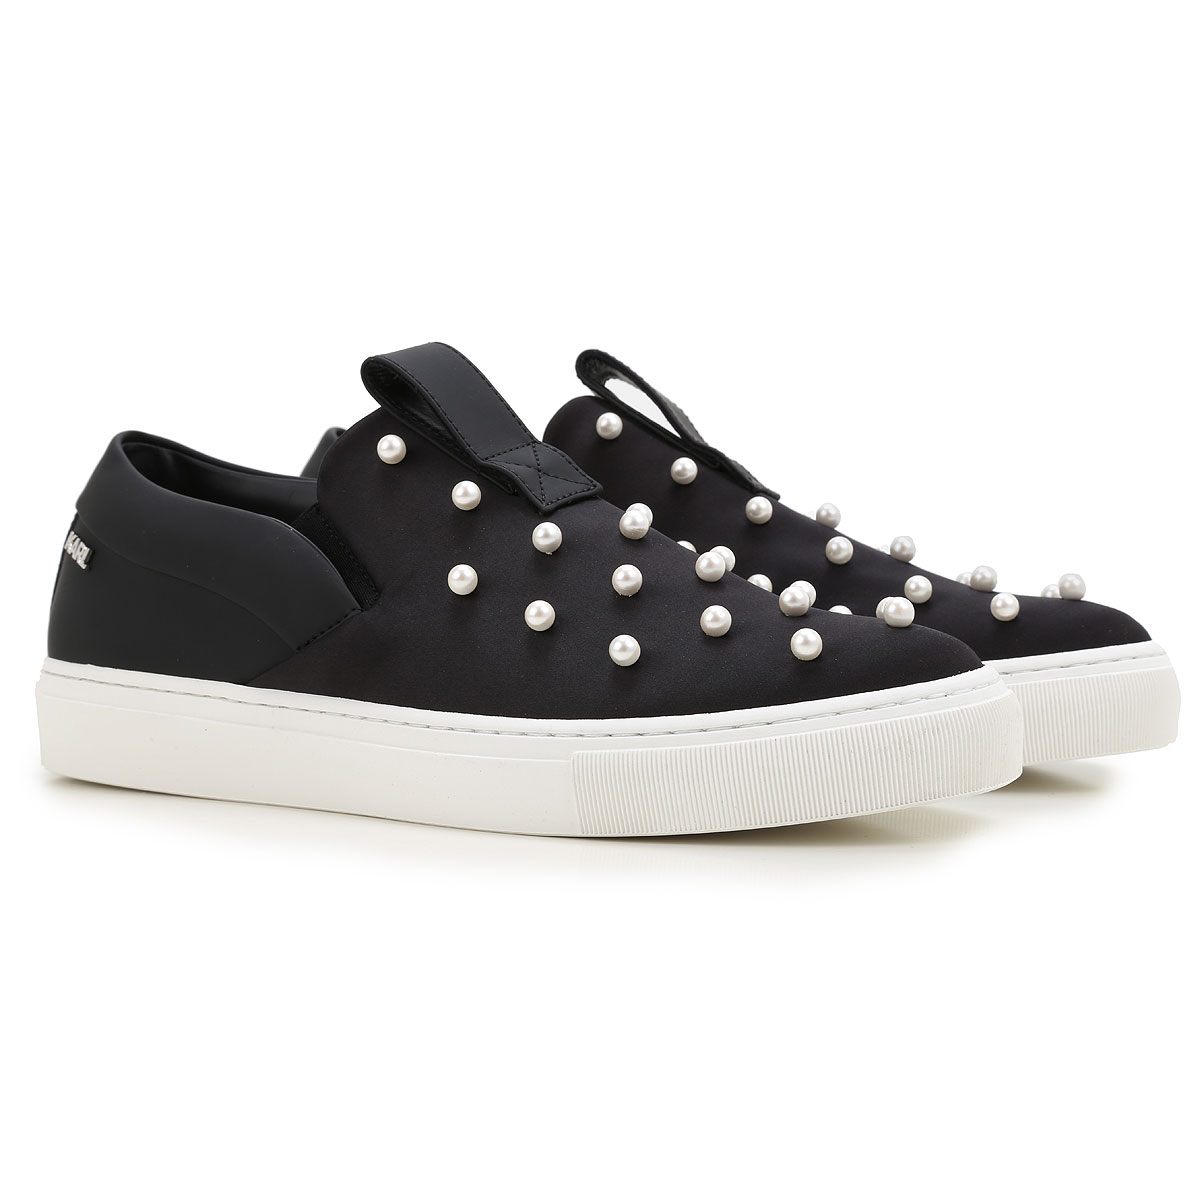 Womens Shoes Karl Lagerfeld Style code 66kw4029ner 368681